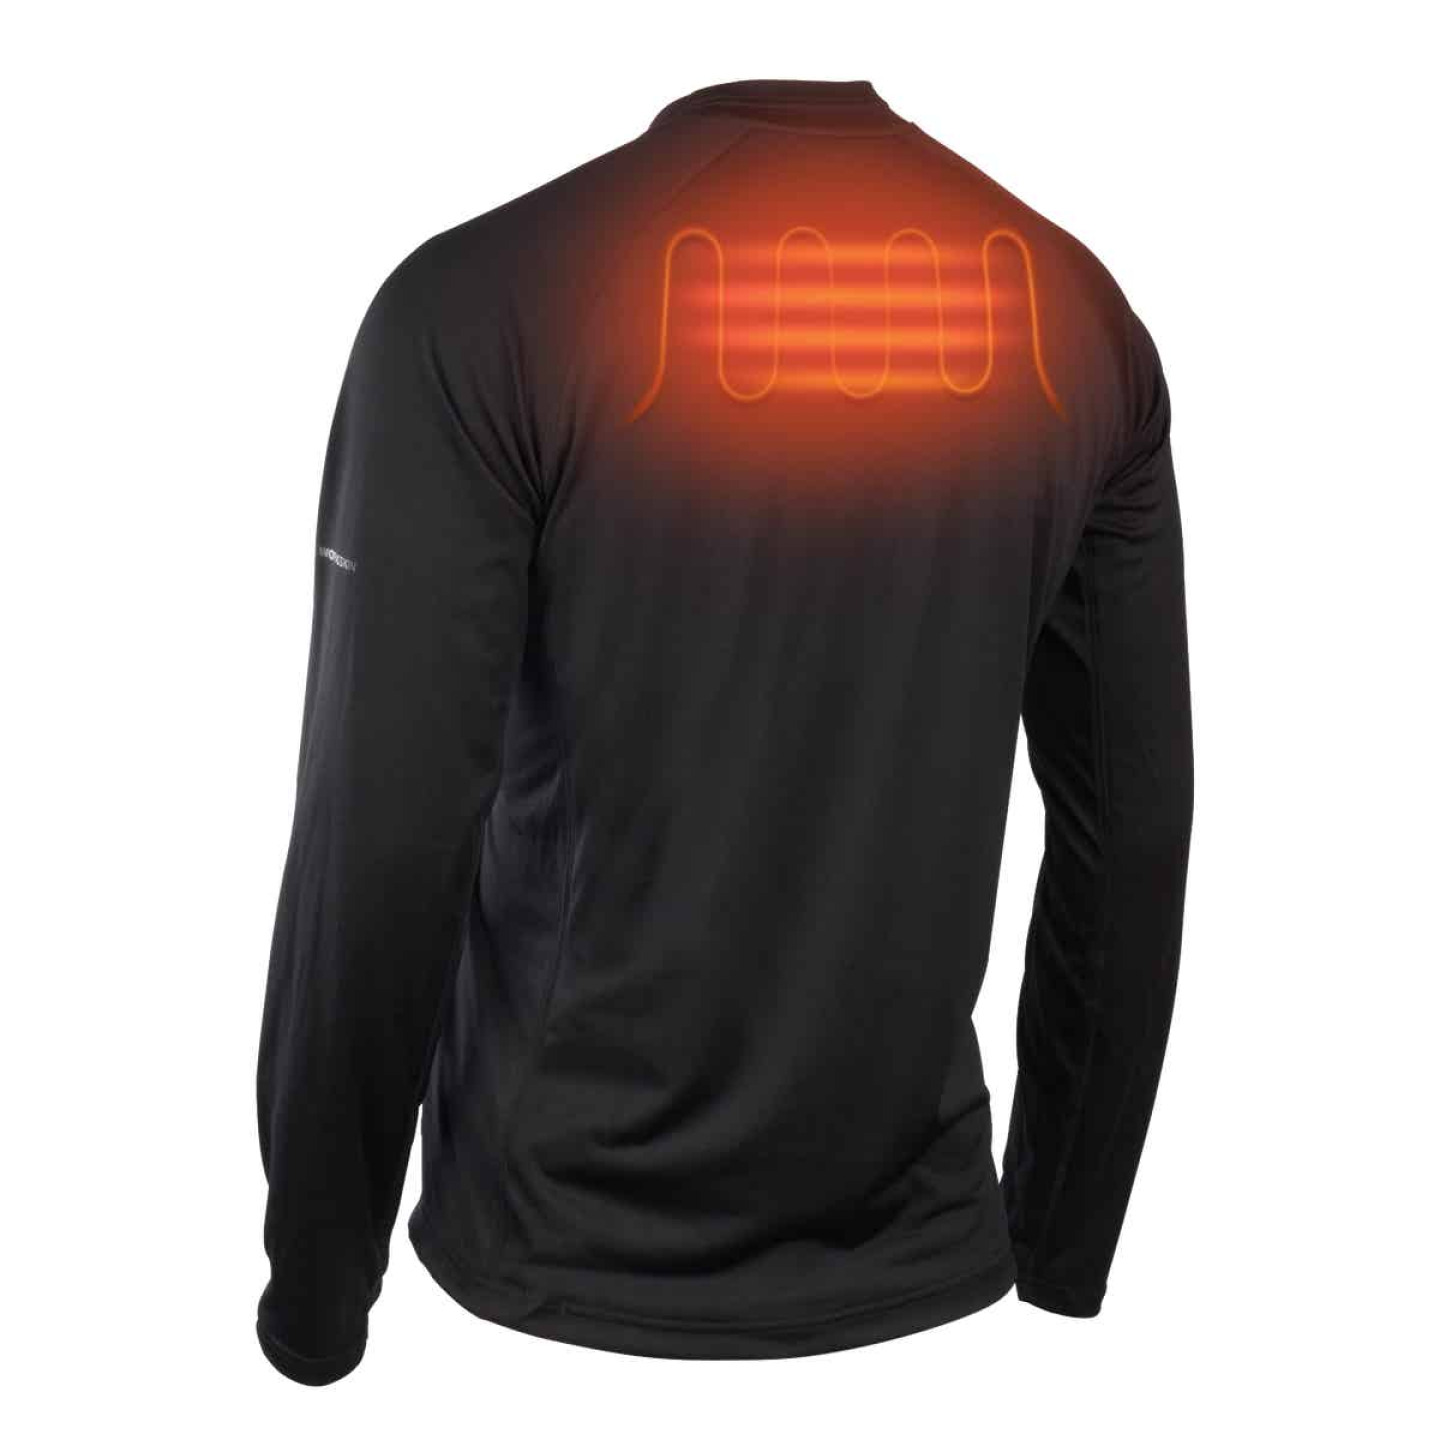 Milwaukee Workskin Medium Black Heated Midweight Base Layer Shirt Image 9